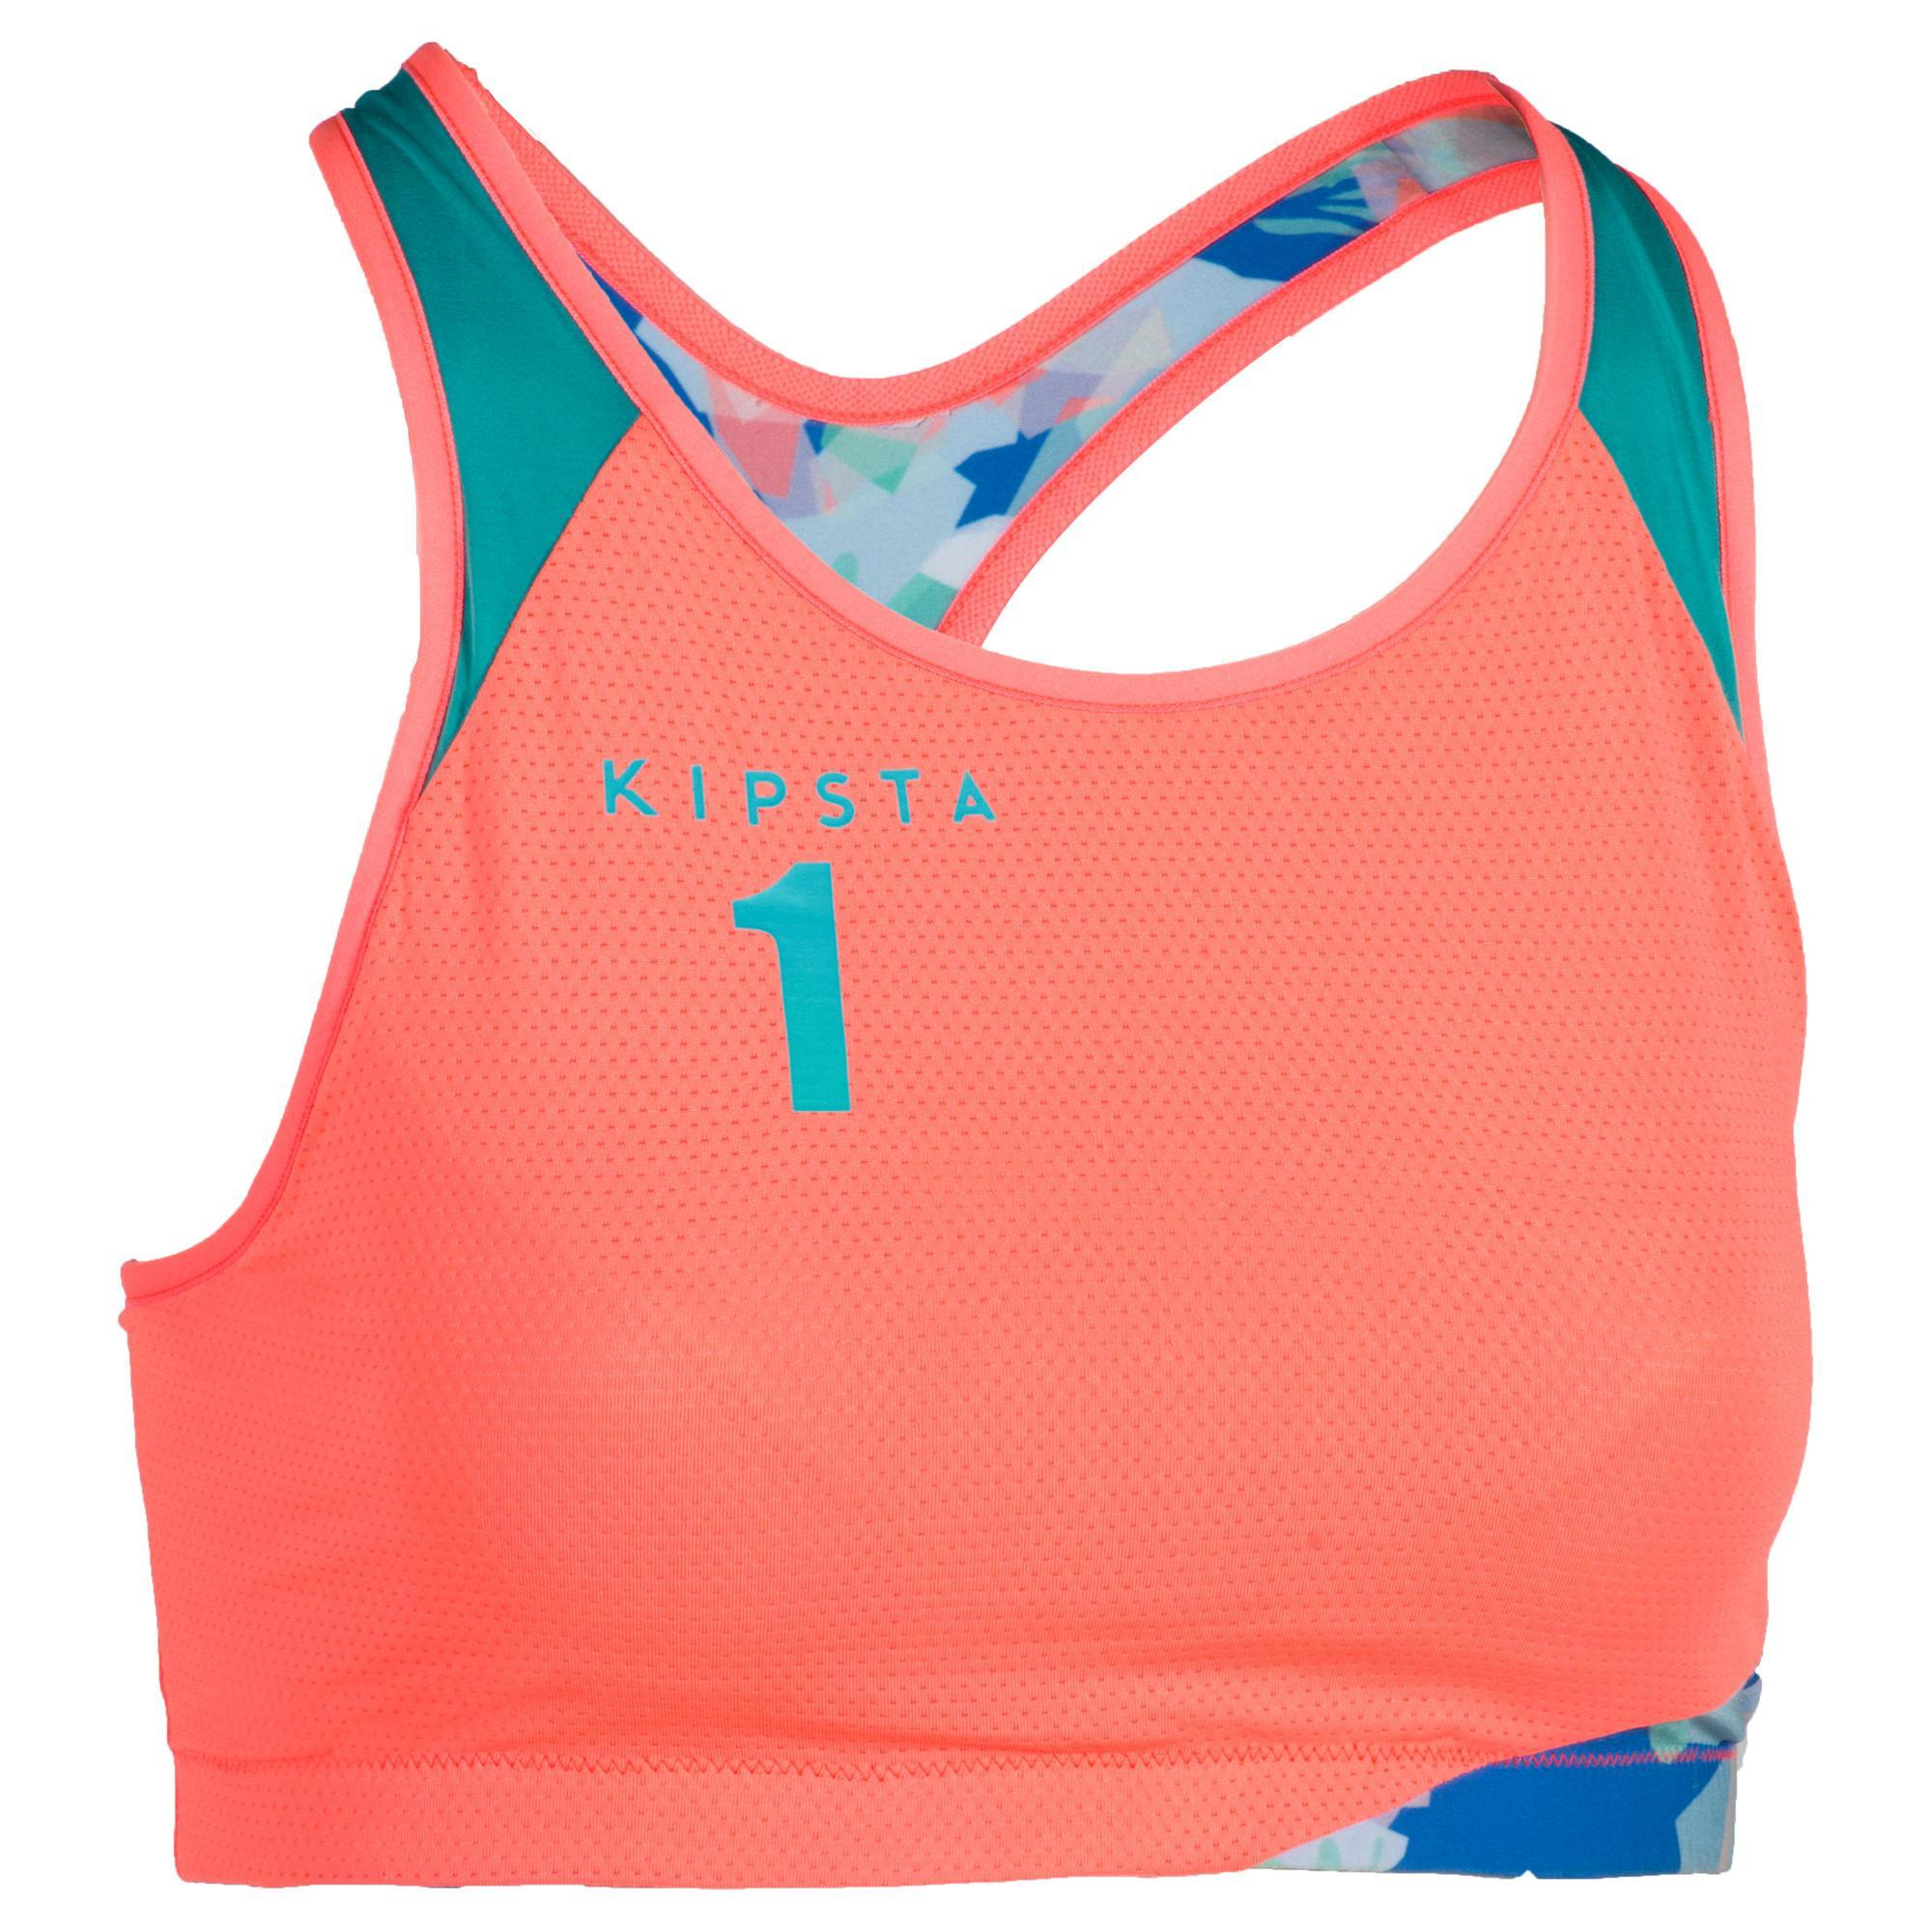 Beachvolleyball-Bustier BV500 Wende-Top orange | Sportbekleidung > Sporttops | Rot - Rosa | Copaya